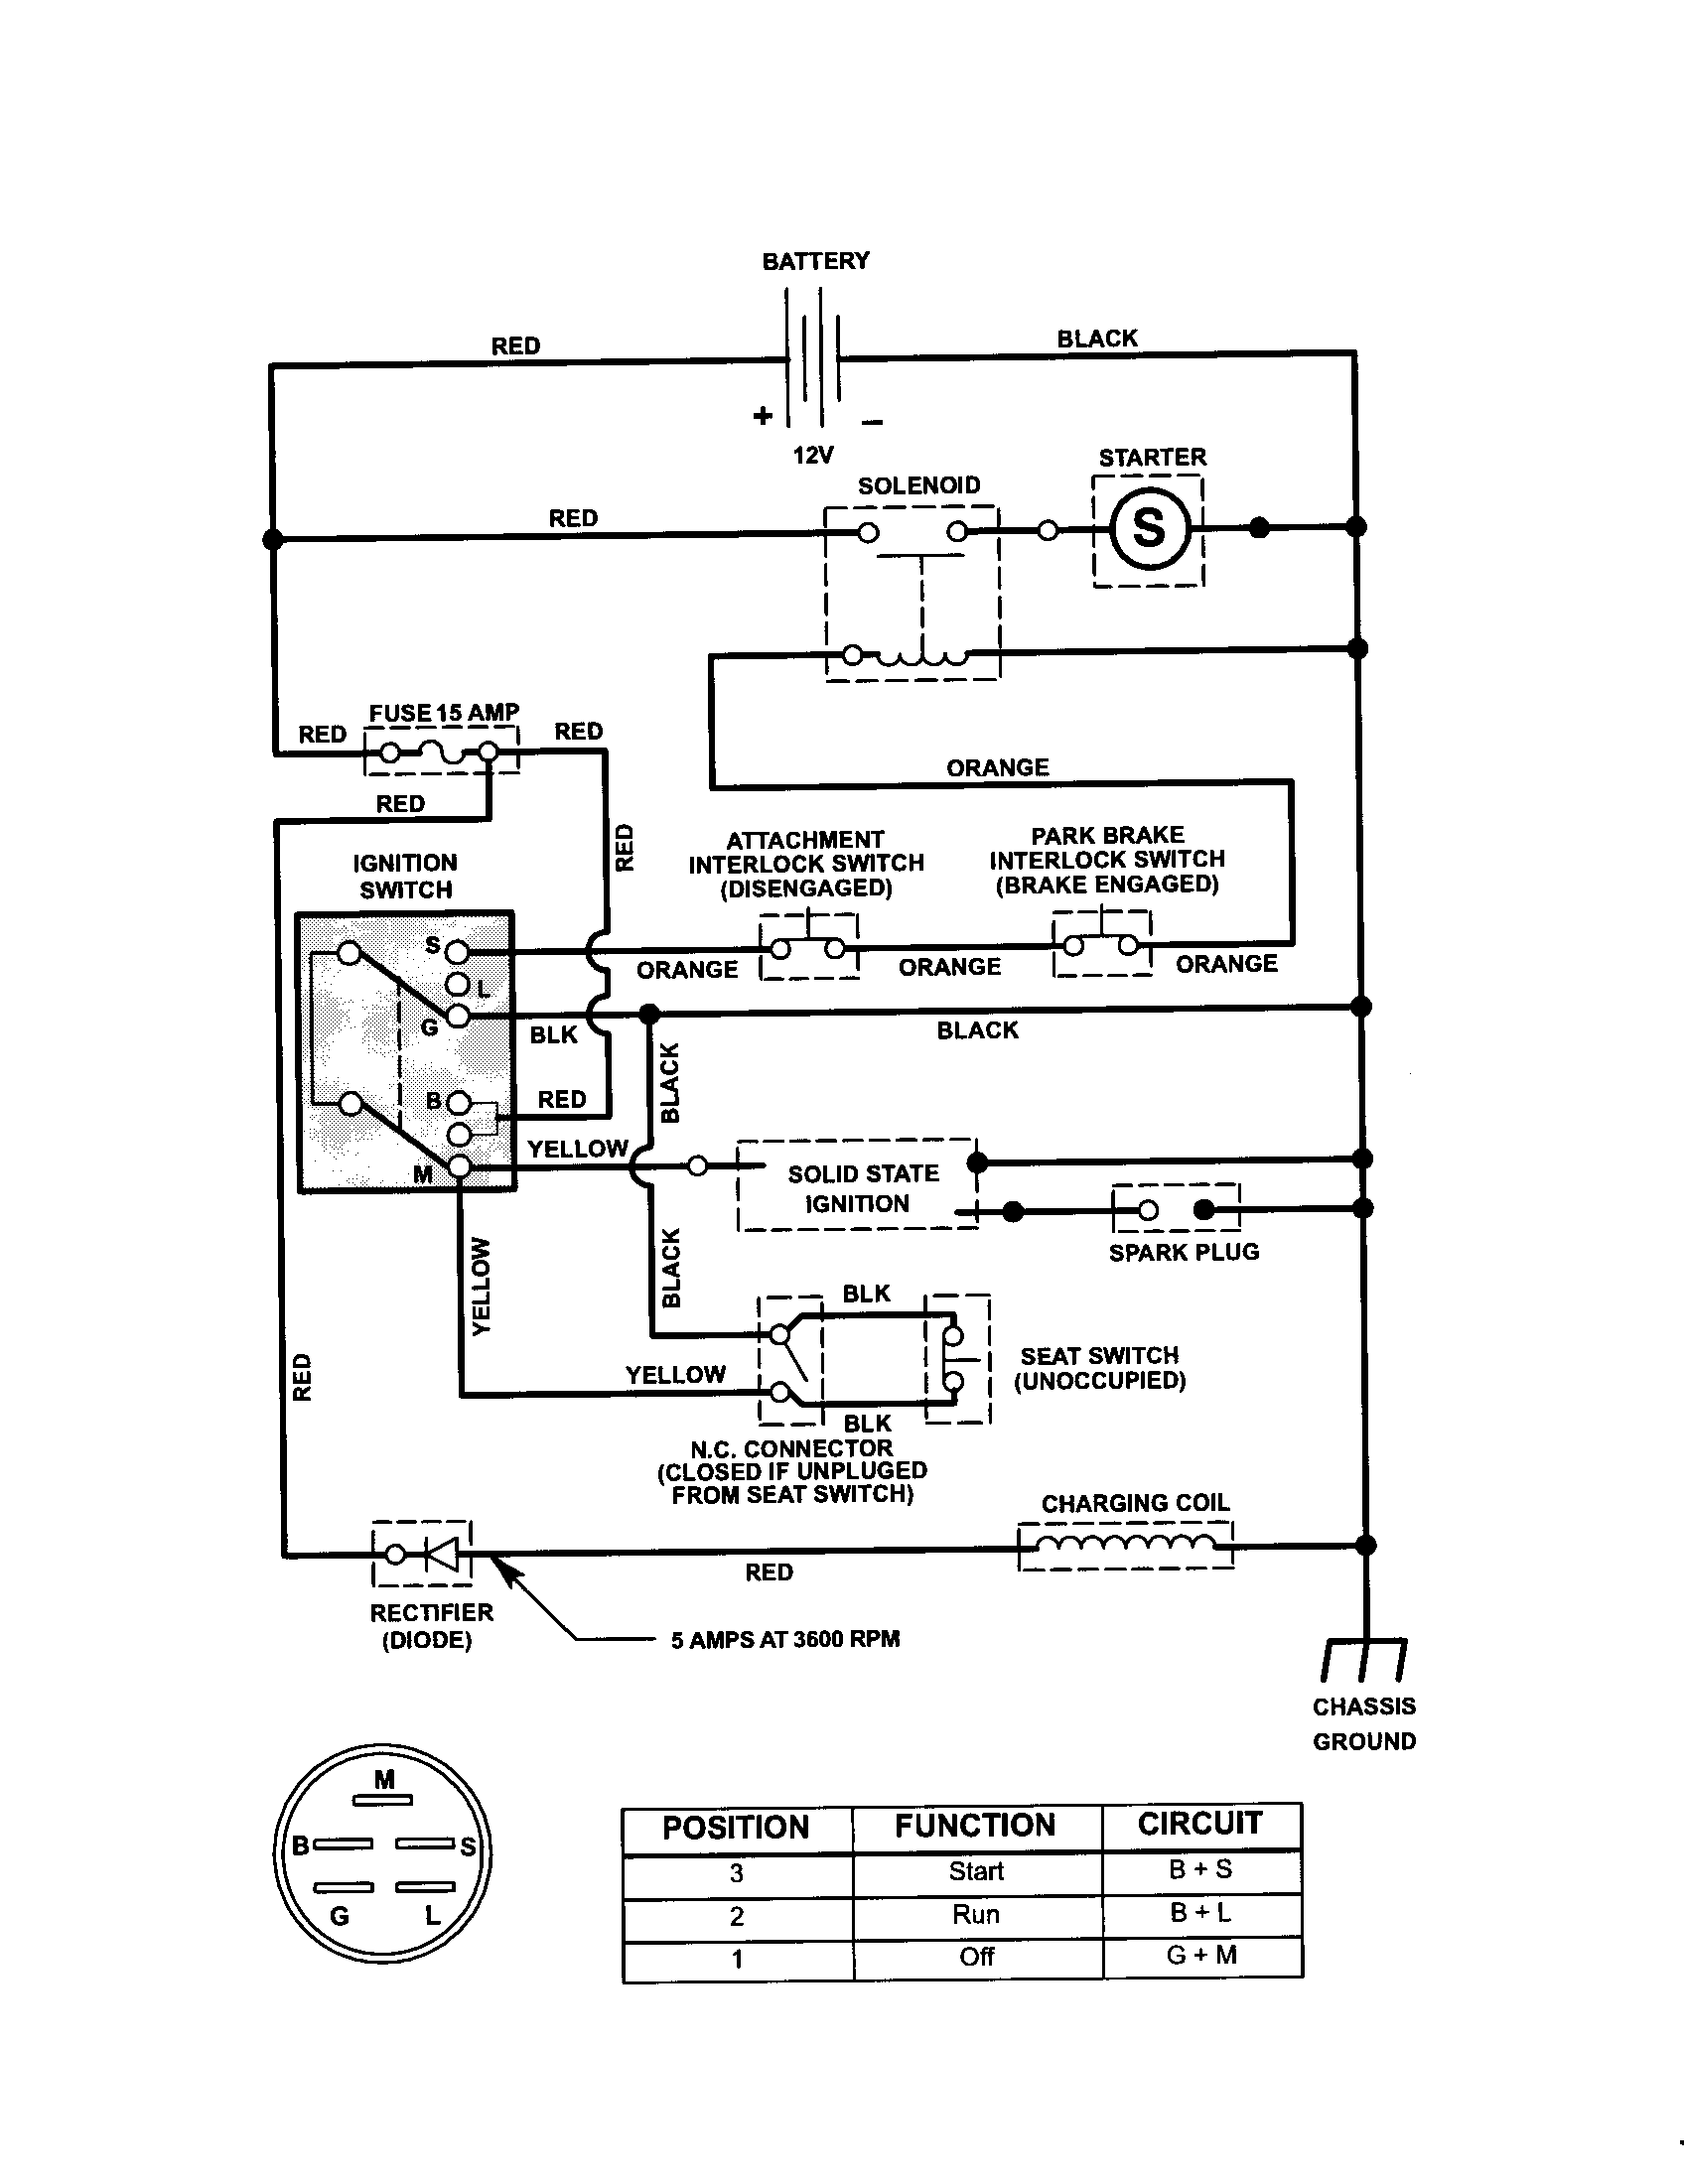 Kubota Tractor Safety Switch Wiring Diagram L3200 Lawn Mower Saftey Diagramkubota Manual E Books